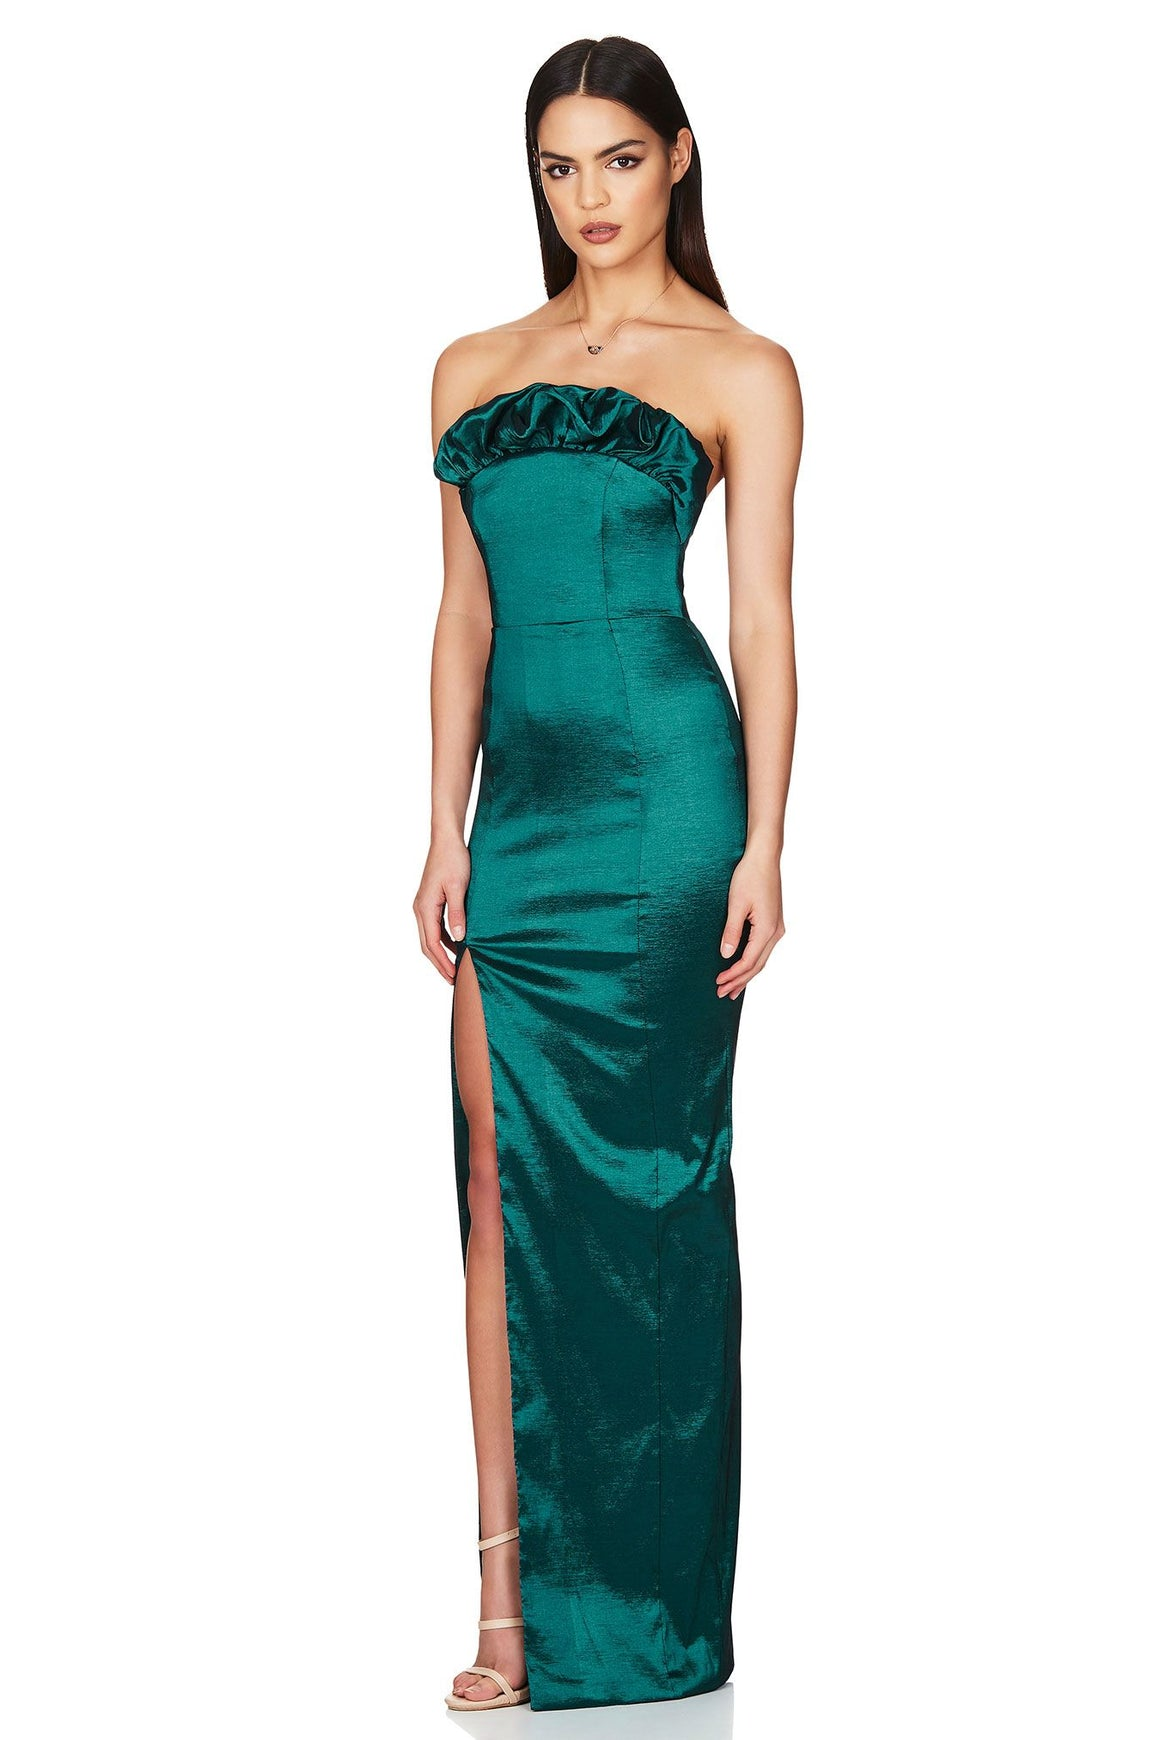 Adore Gown - Teal